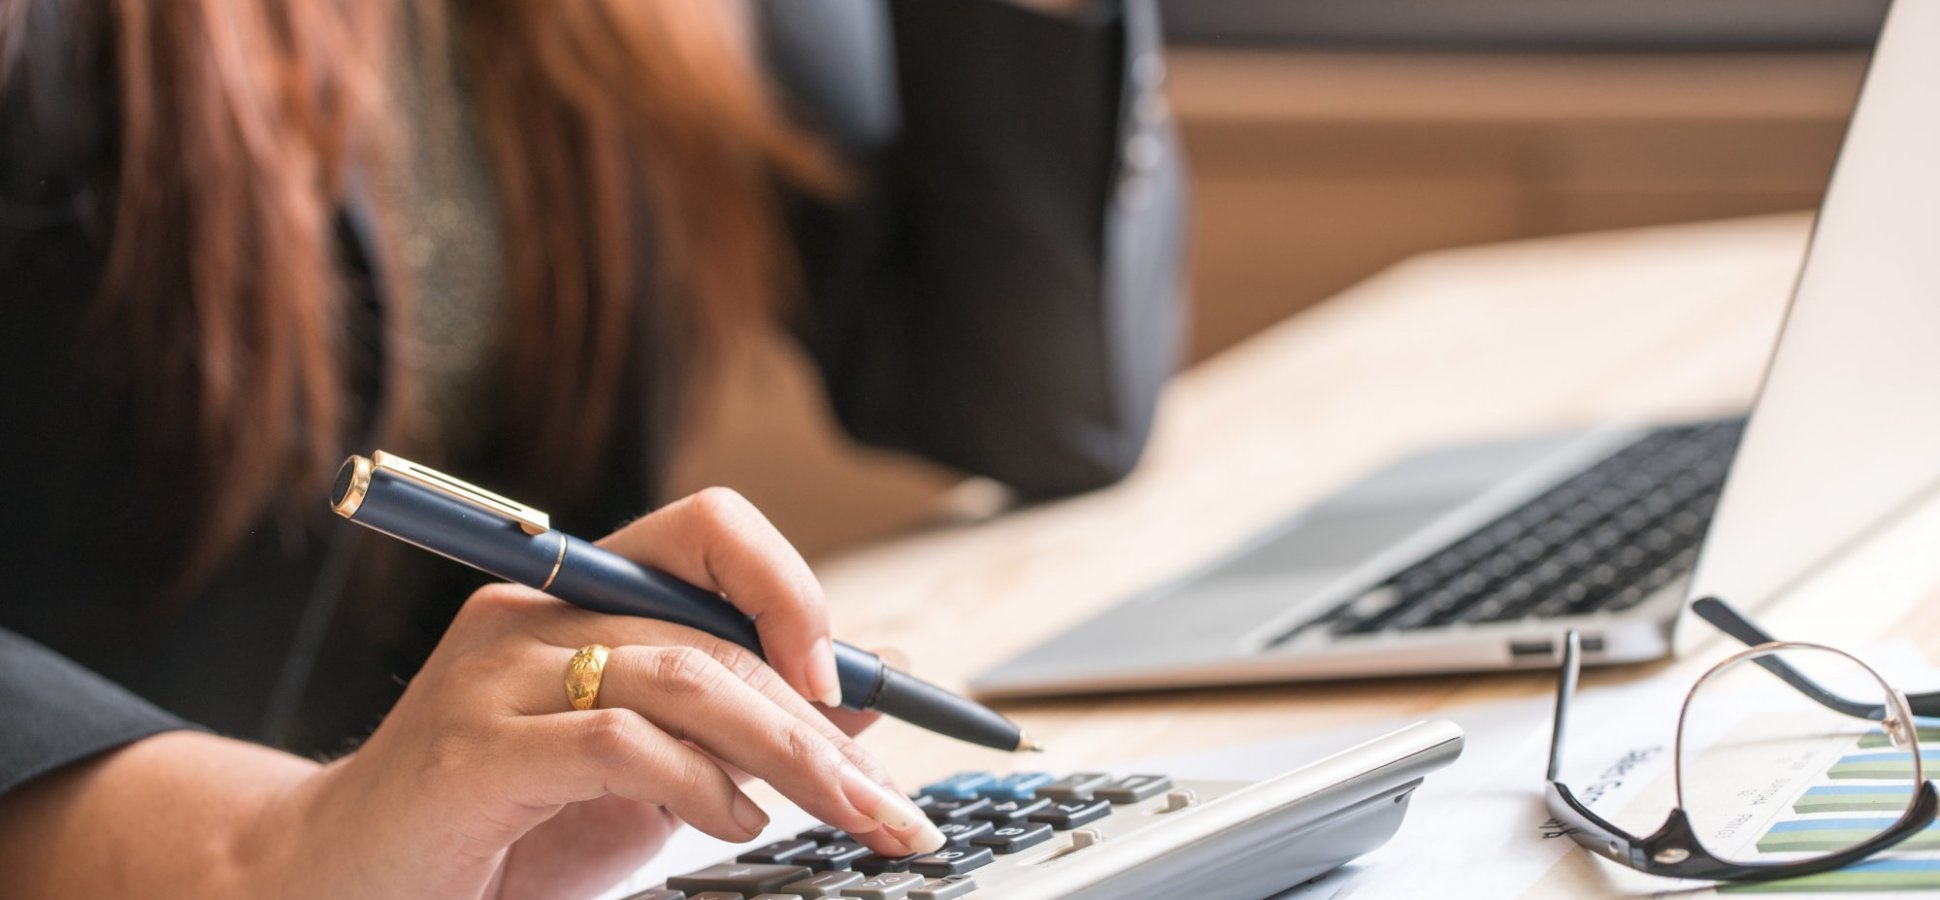 Some Tips You Could Use When Hiring an Accountant